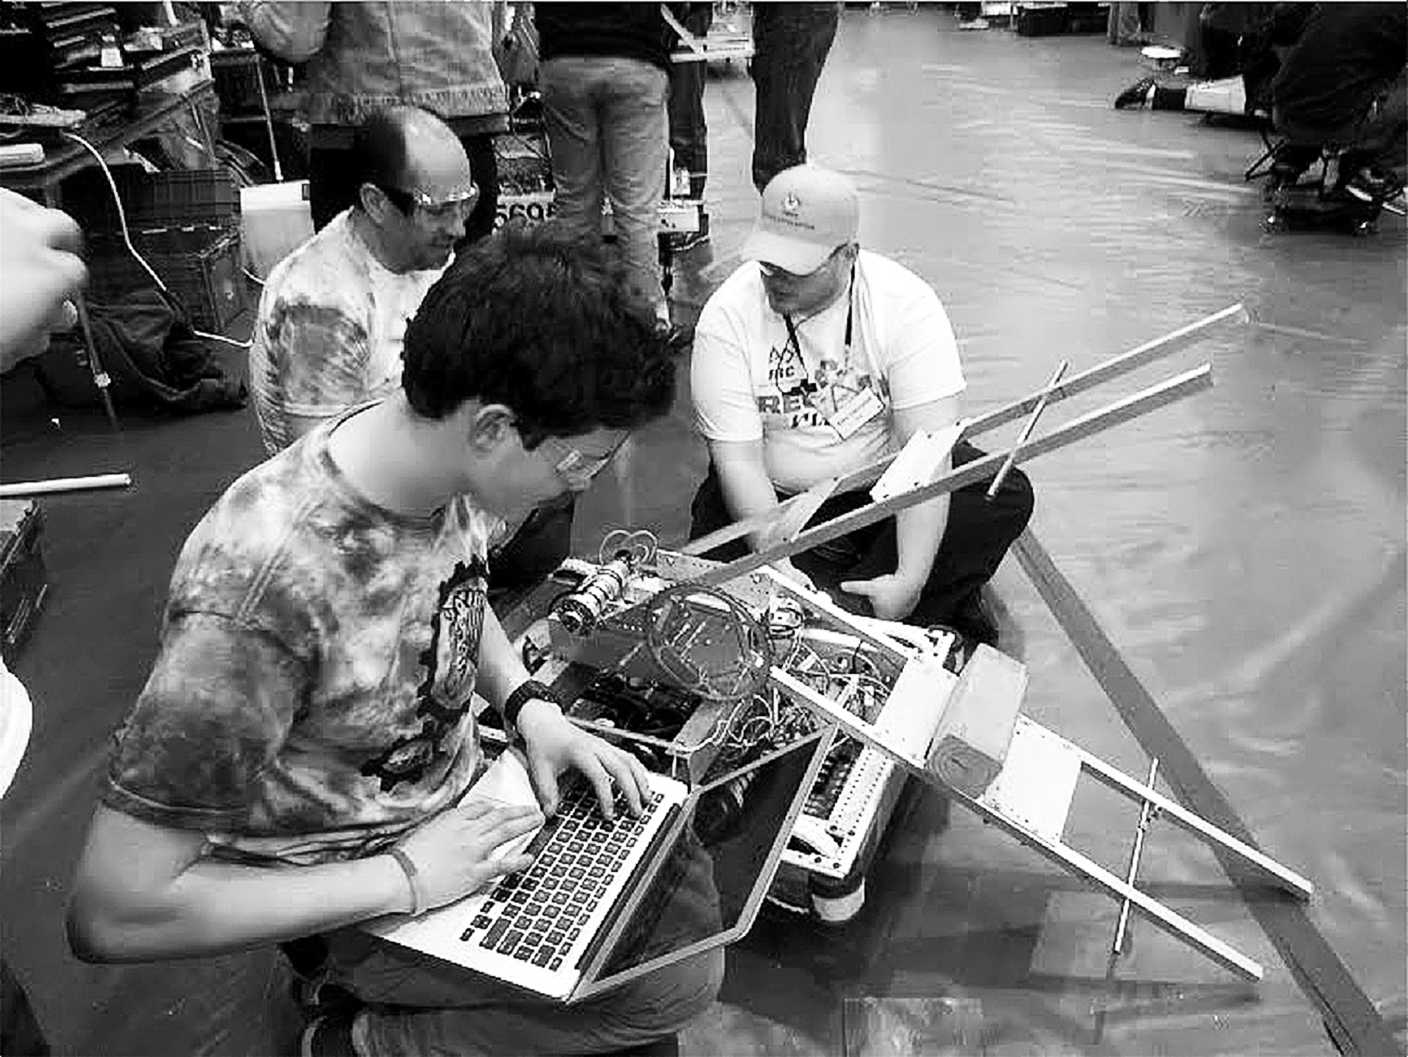 A member of Zebrotics works with team mentors to de-bug the robot's code and ensure that it follows regulation.